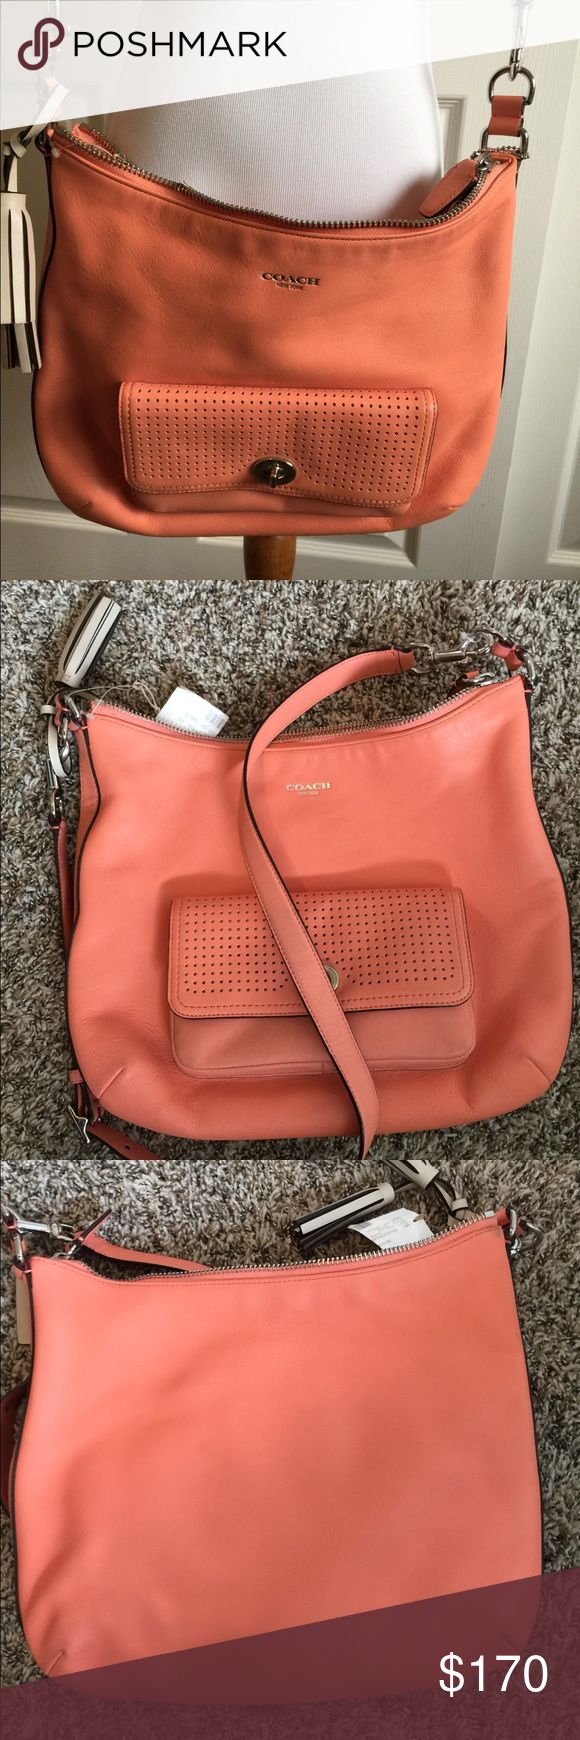 NWT Coach Legacy Hobo Bag Legacy Perforated Courtenay Hobo satchel  23704 Coral sand 13 x 11.5 x 3.25 Handle and cross body strap silver hardware with dust bag Coach Bags Shoulder Bags